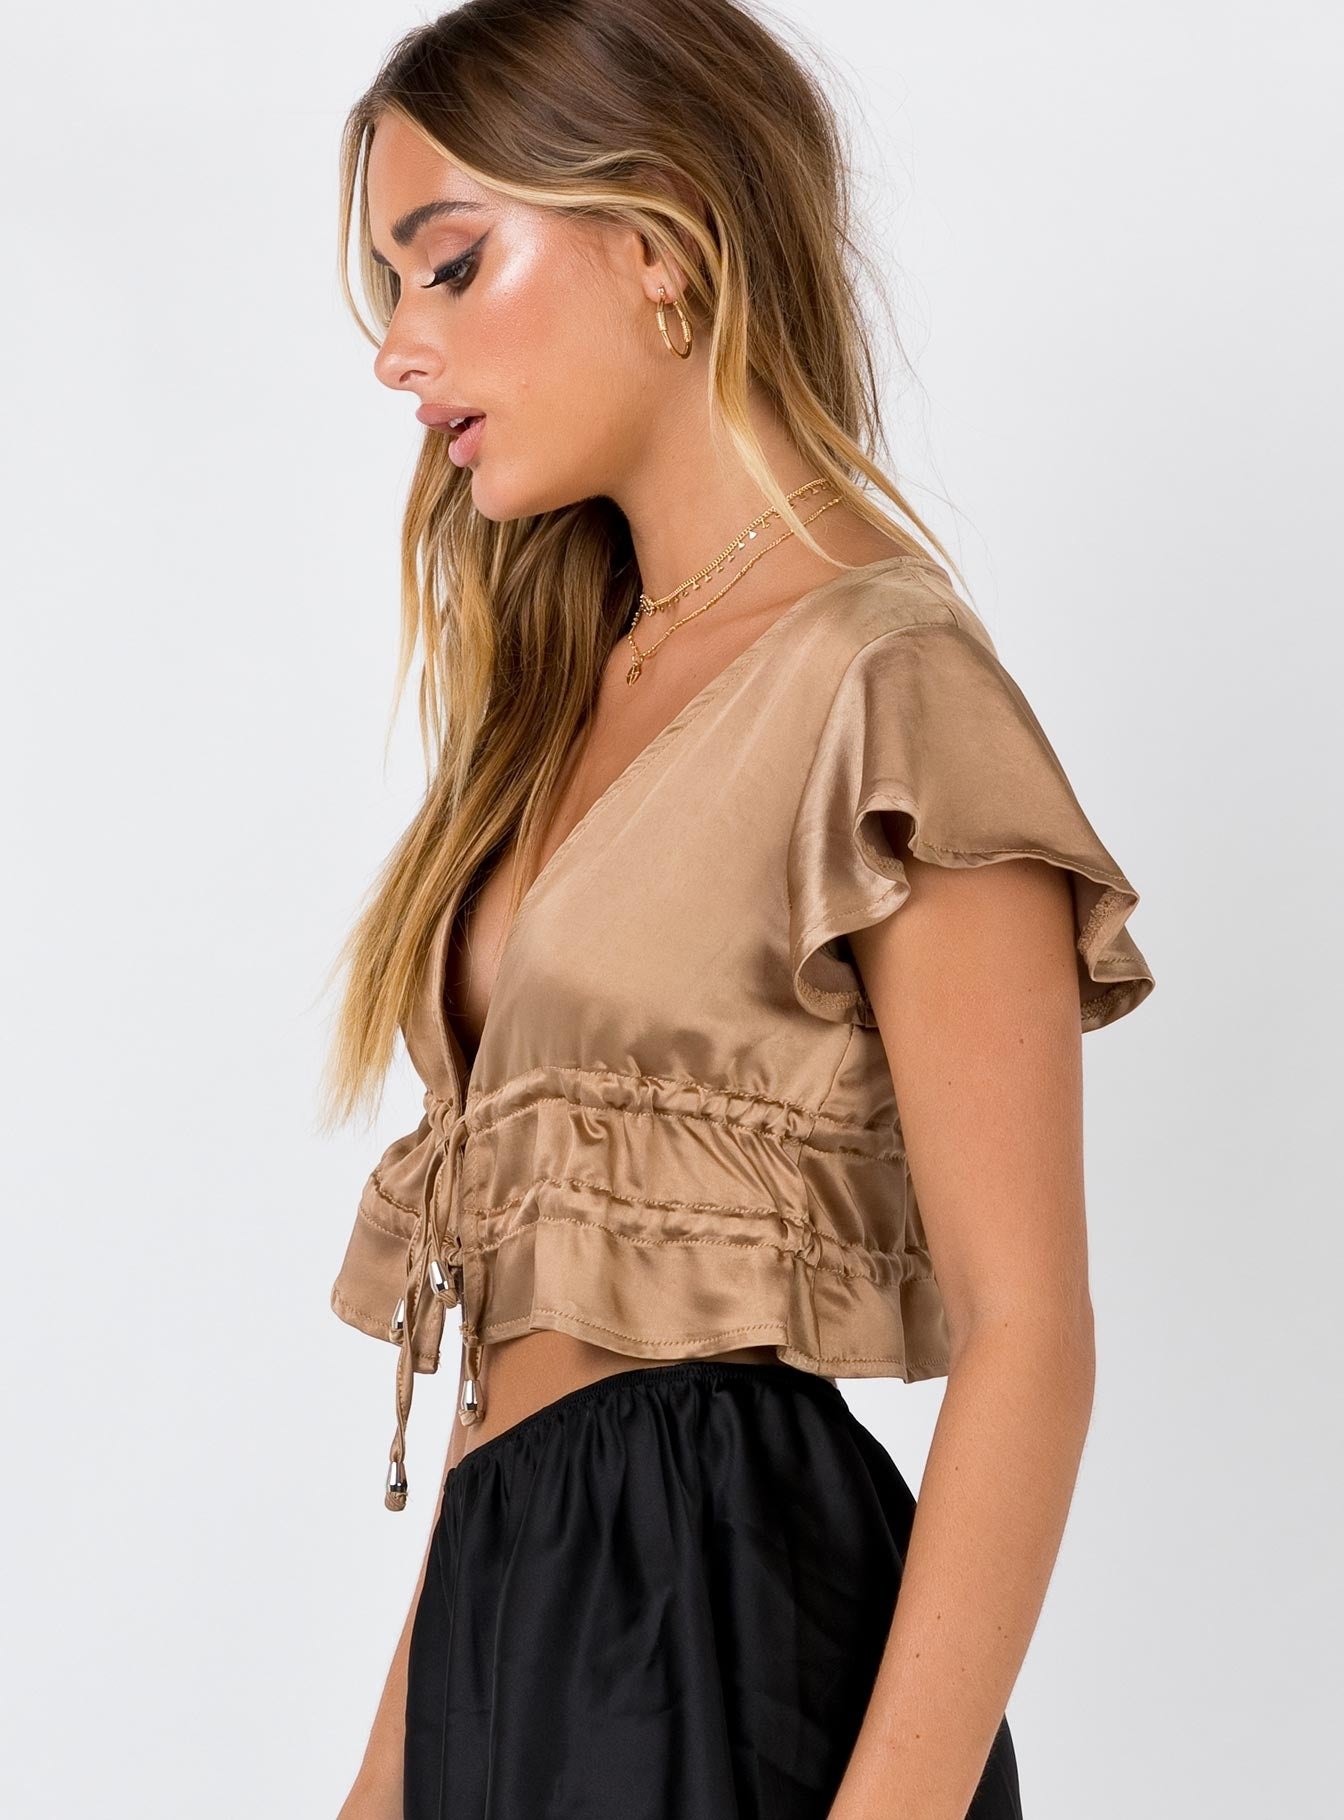 Tasmon Silky Crop Top Beige